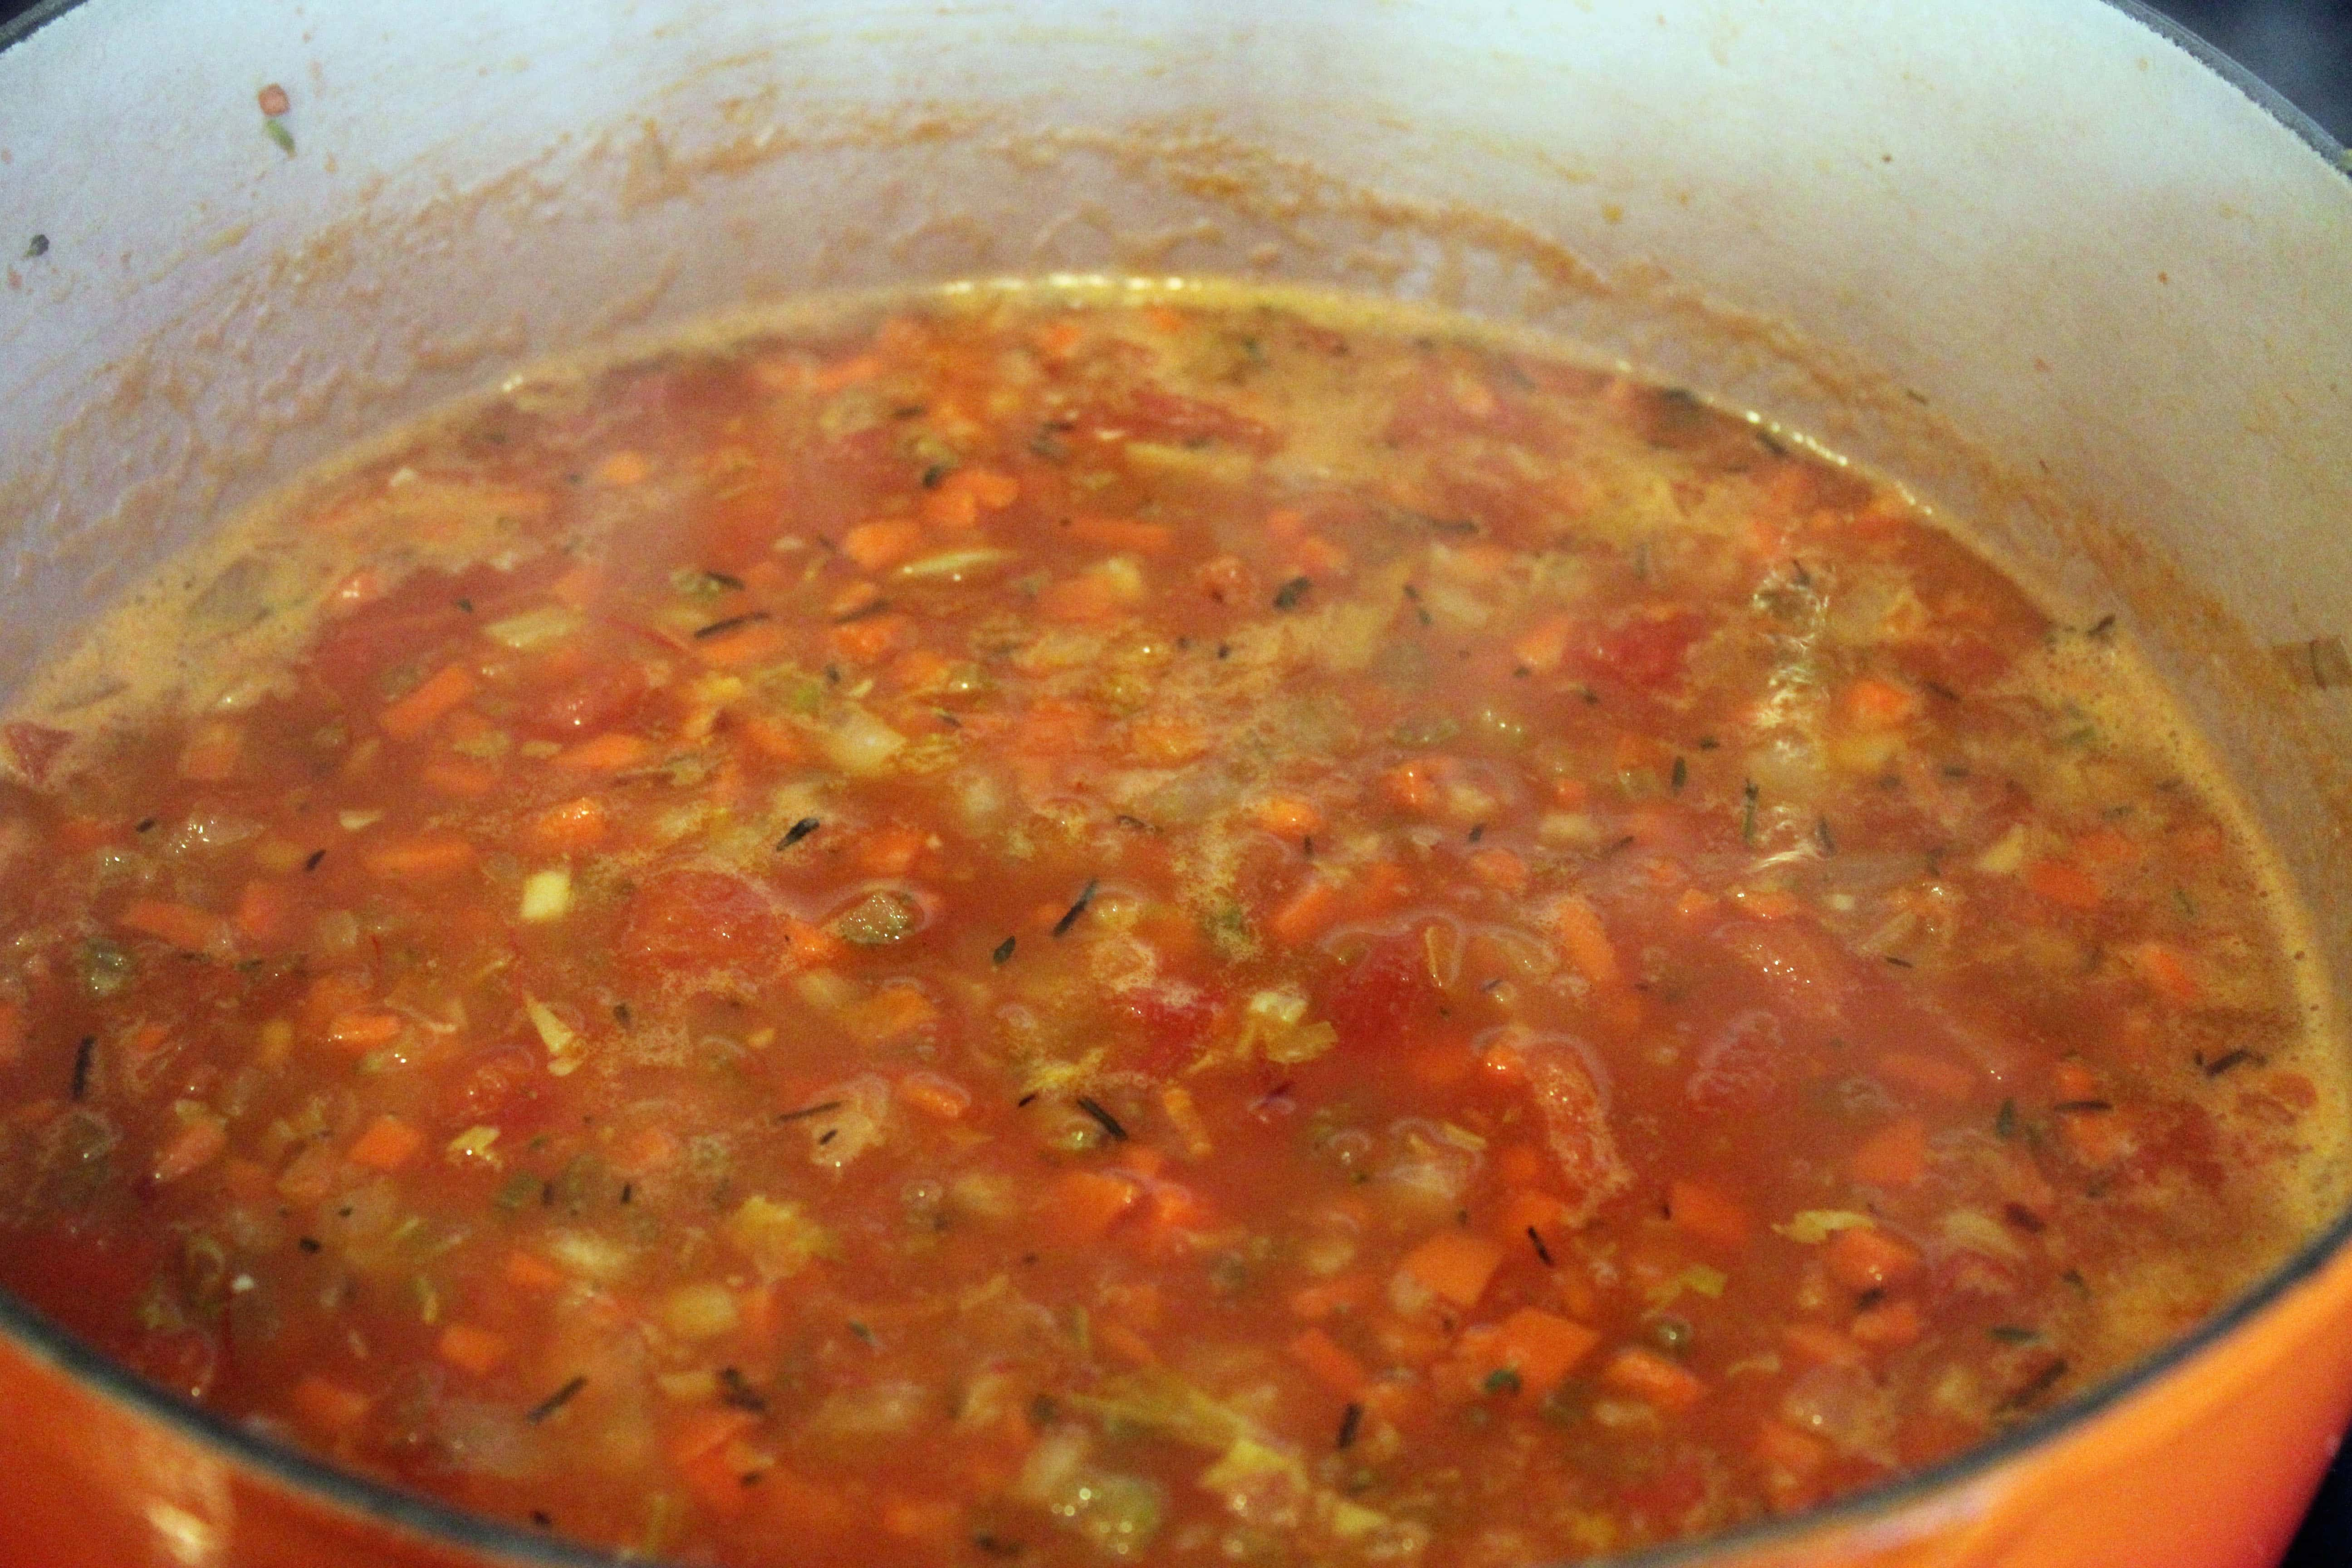 Let sauce simmer for 2 minutes before adding meat